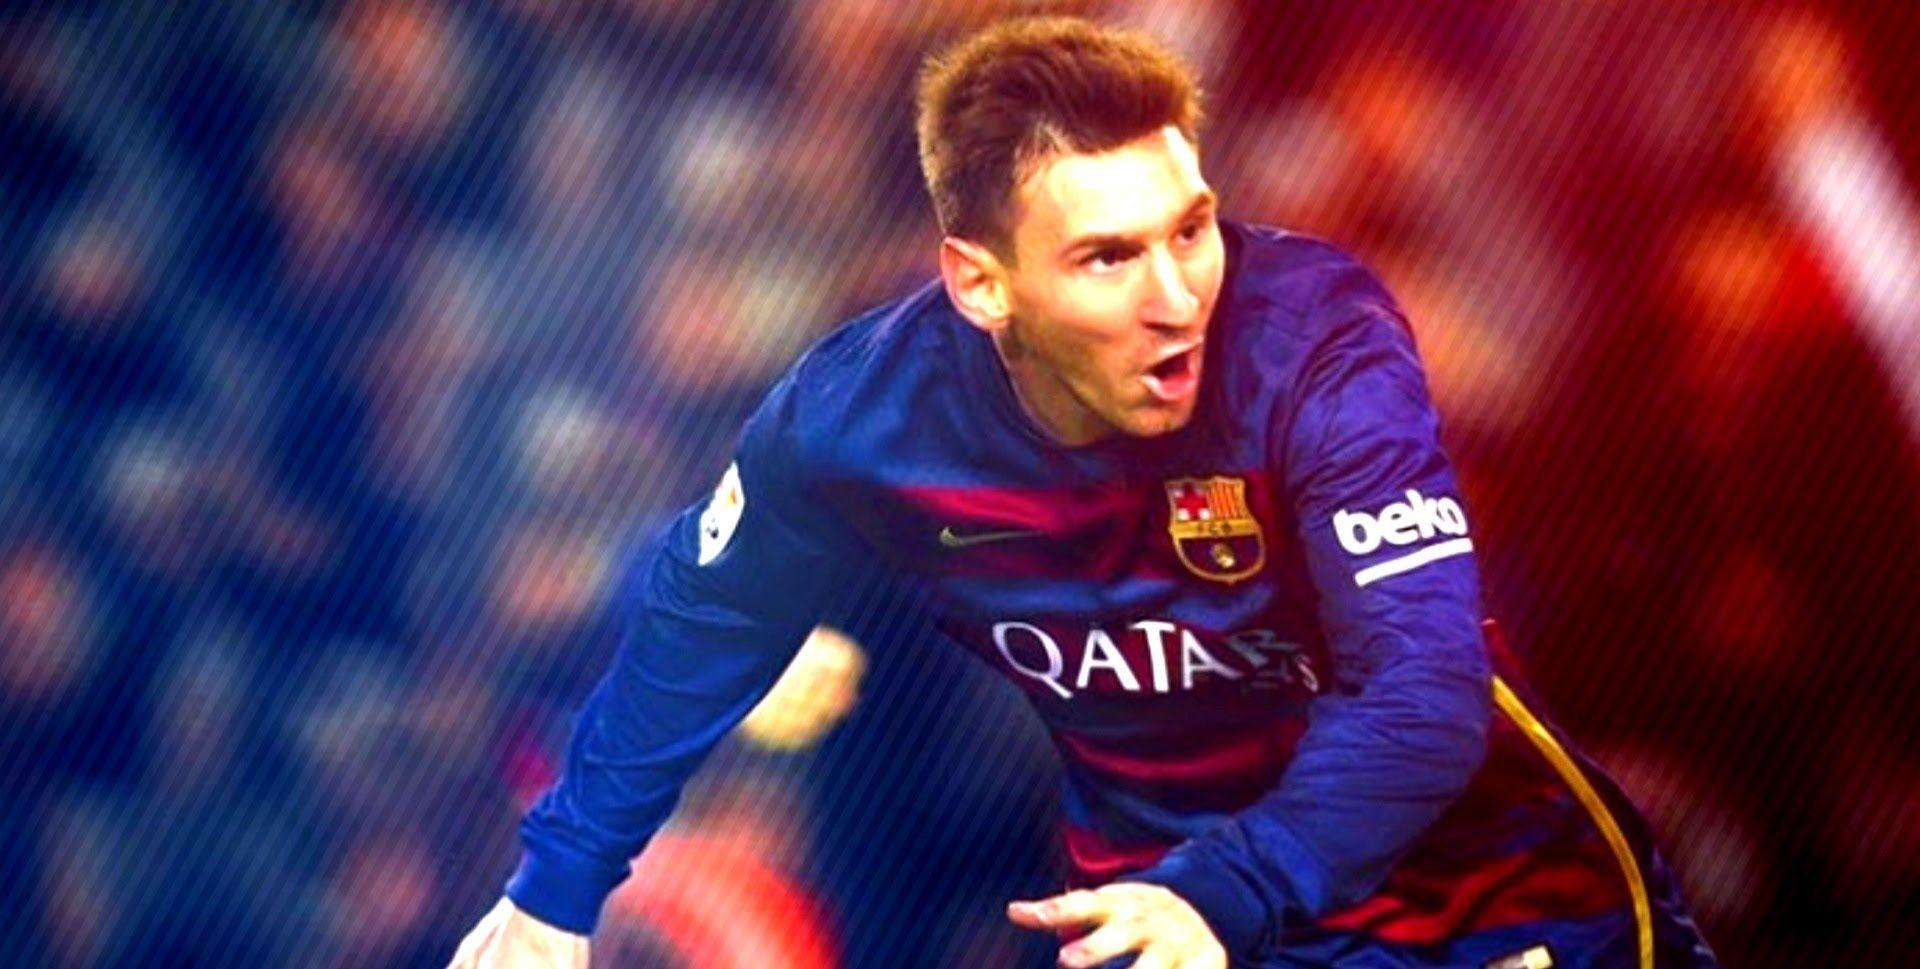 Lionel Messi Wallpapers 2016 1920x969